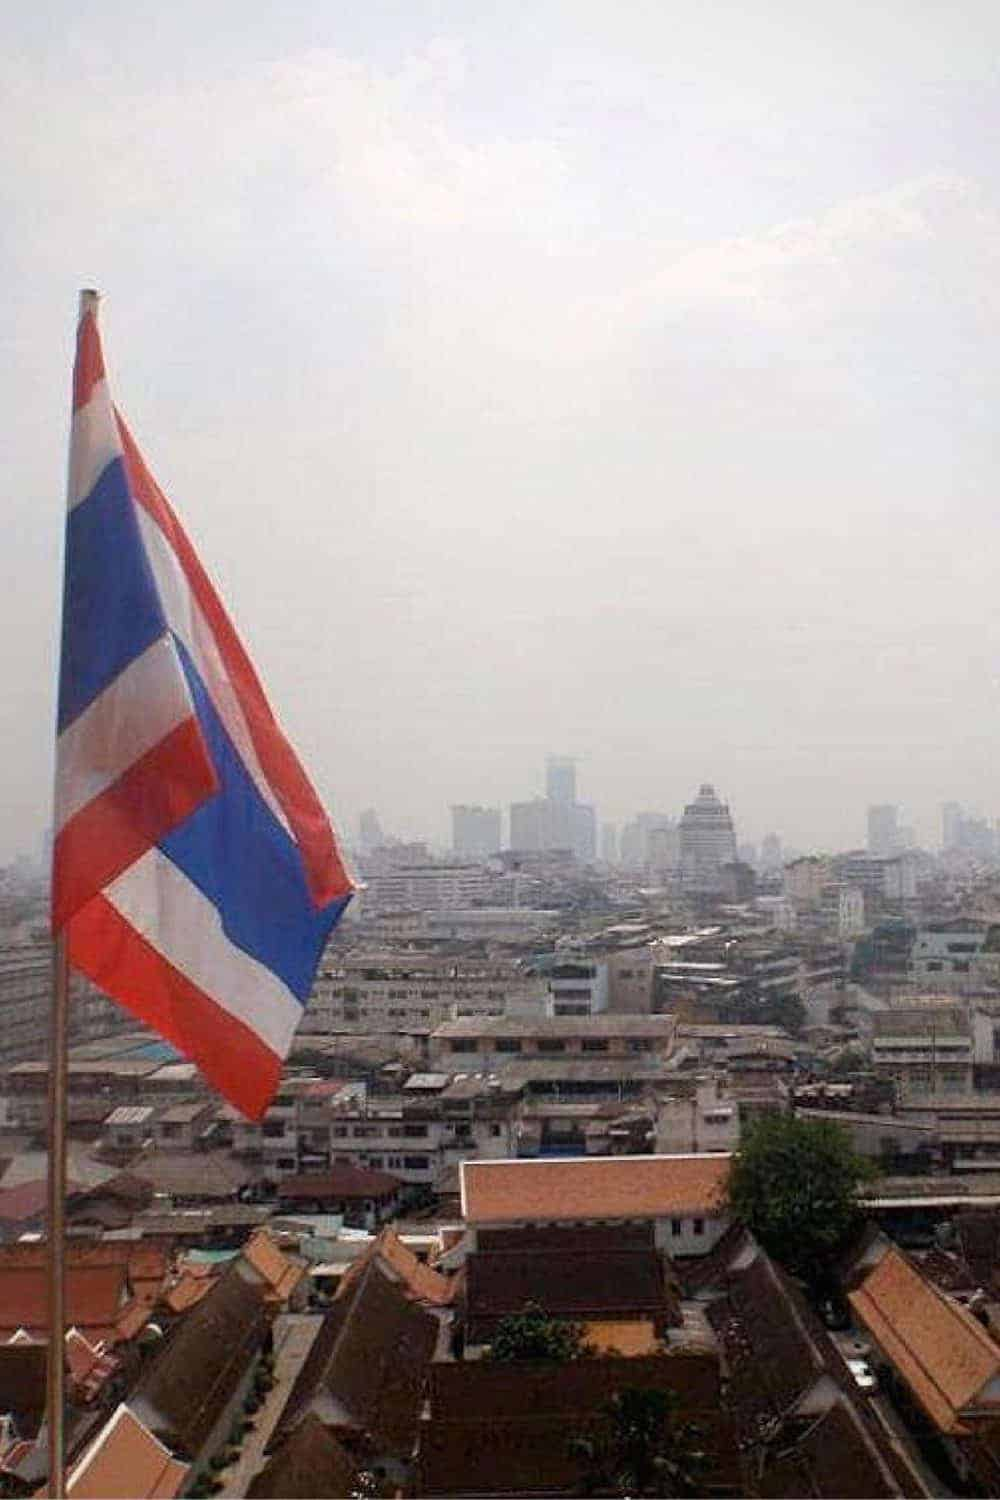 The Thai flag with a city view